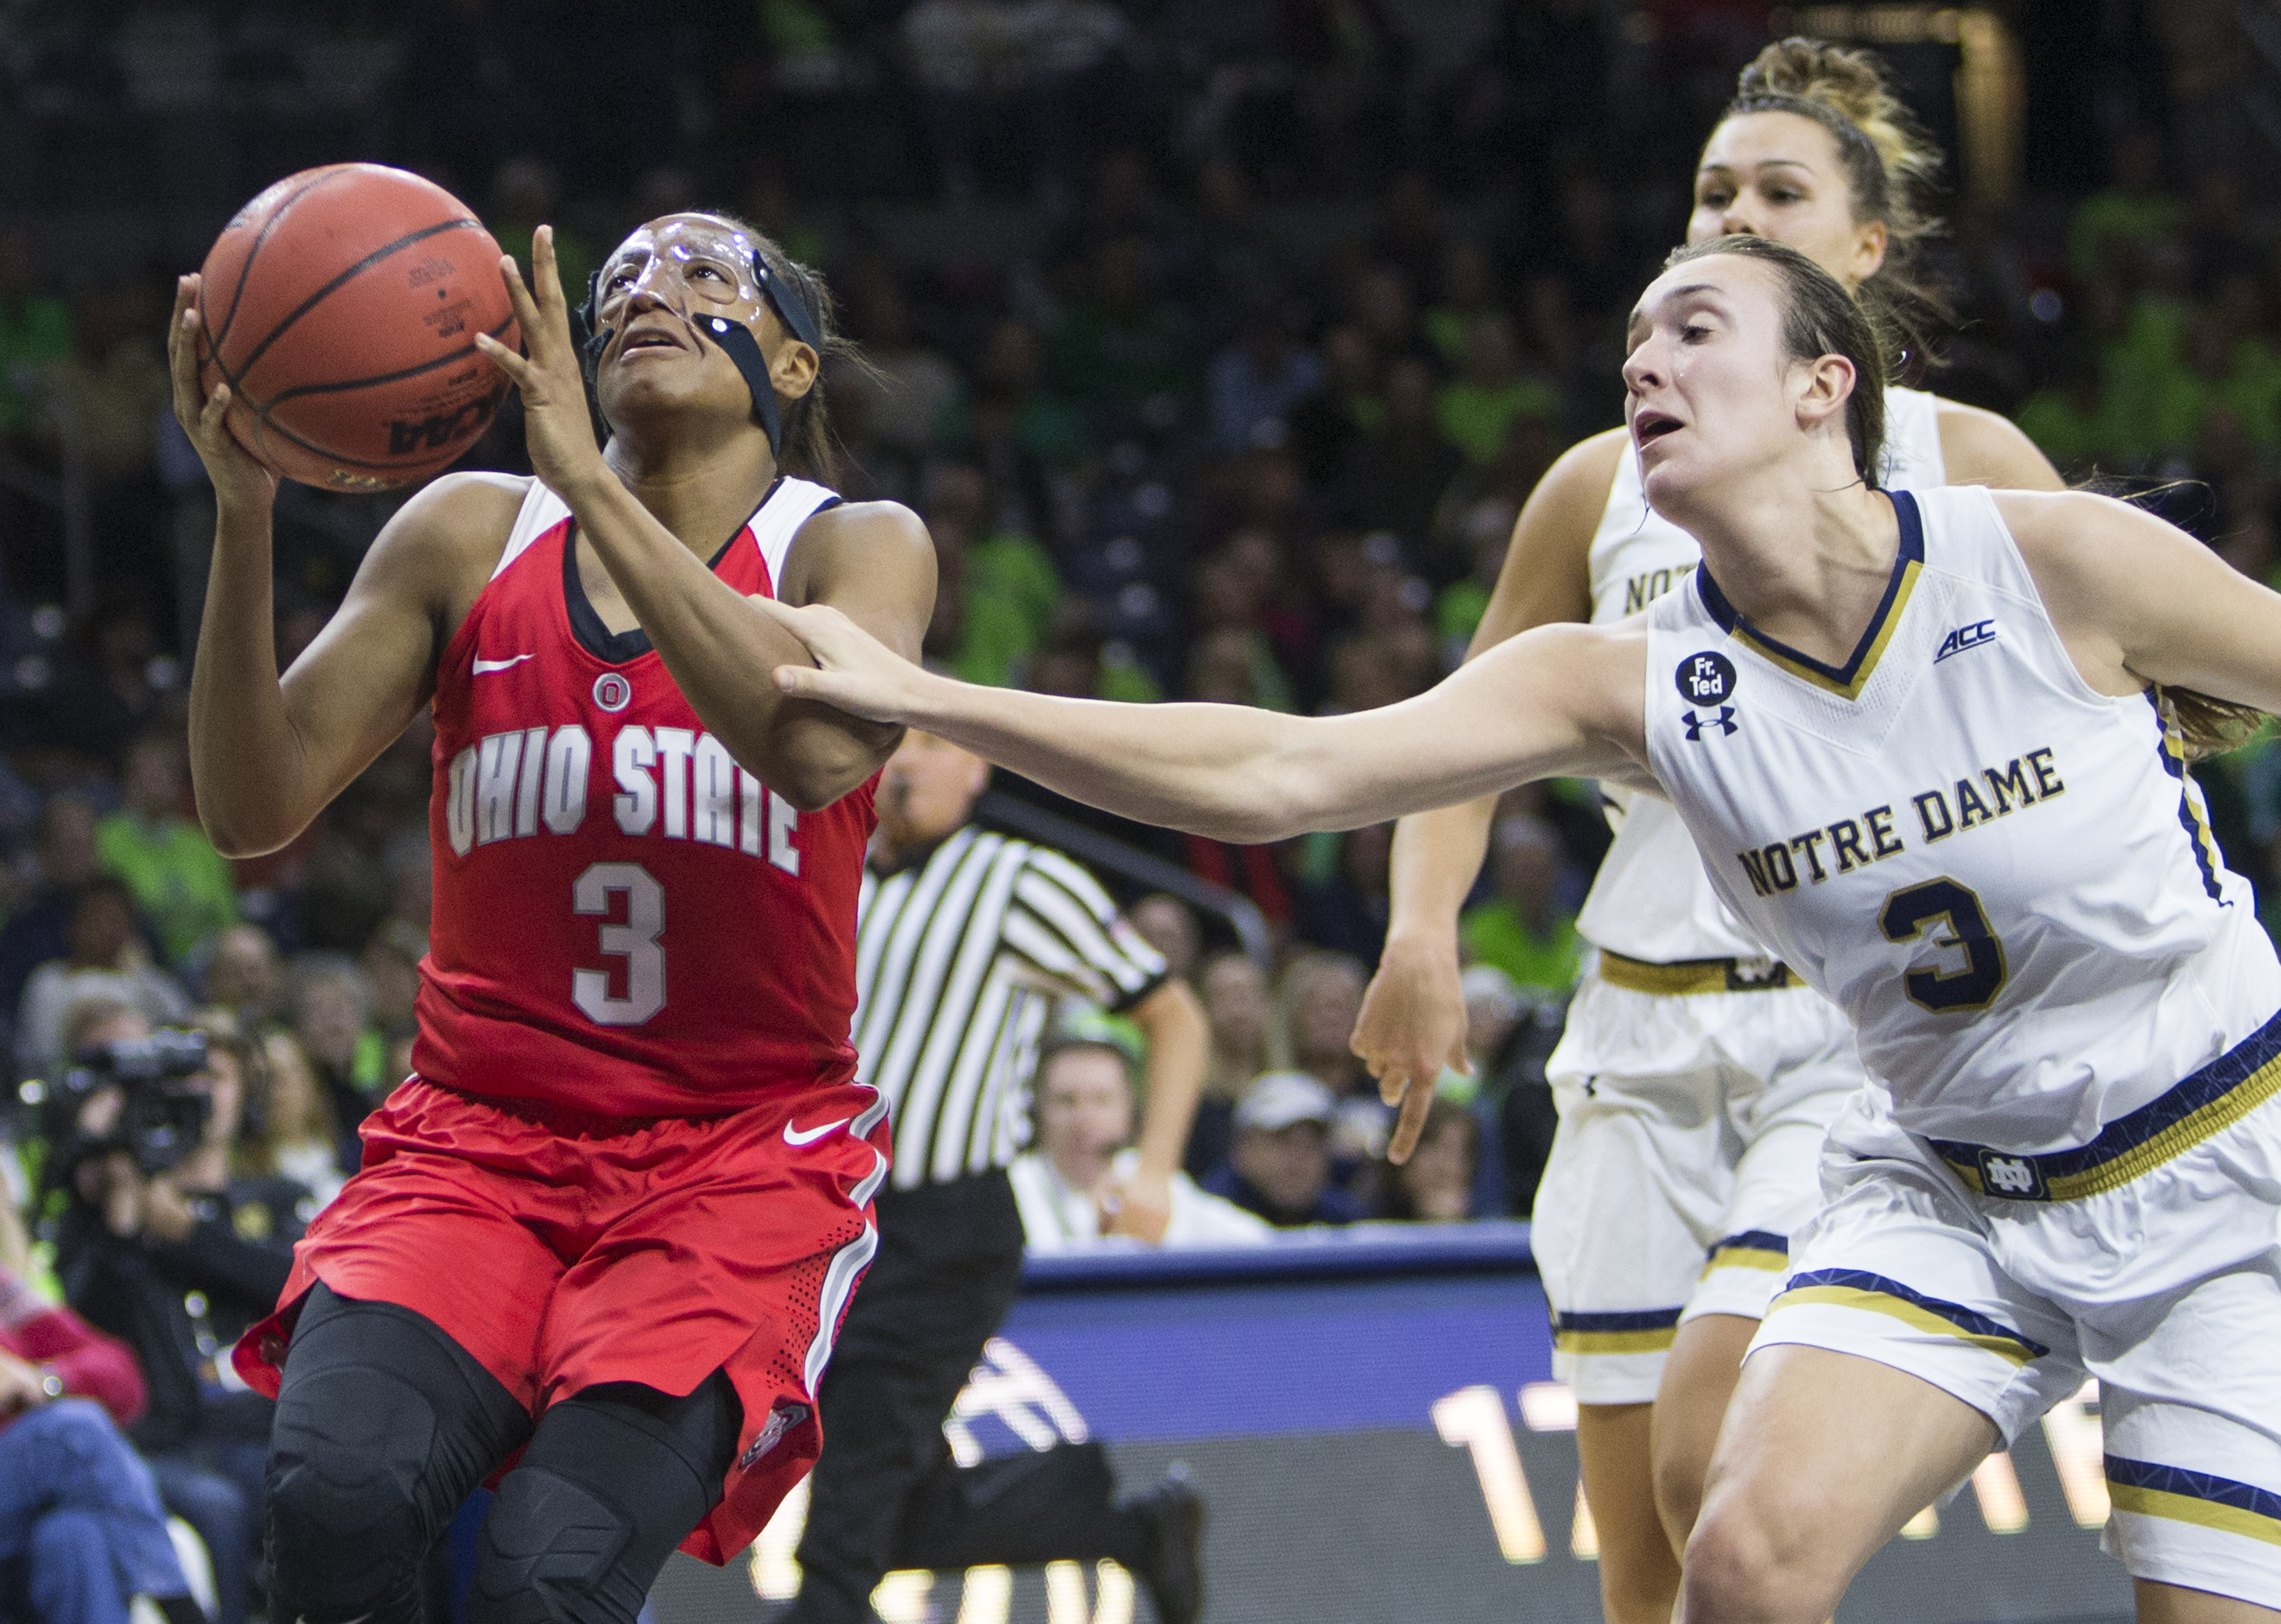 Notre Dame's Marina Mabrey, right, fouls Ohio State's Kelsey Mitchell (3) under the basket during the first half of an NCAA college basketball game on Wednesday, Dec. 2, 2015, in South Bend, Ind.  (AP Photo/Robert Franklin)